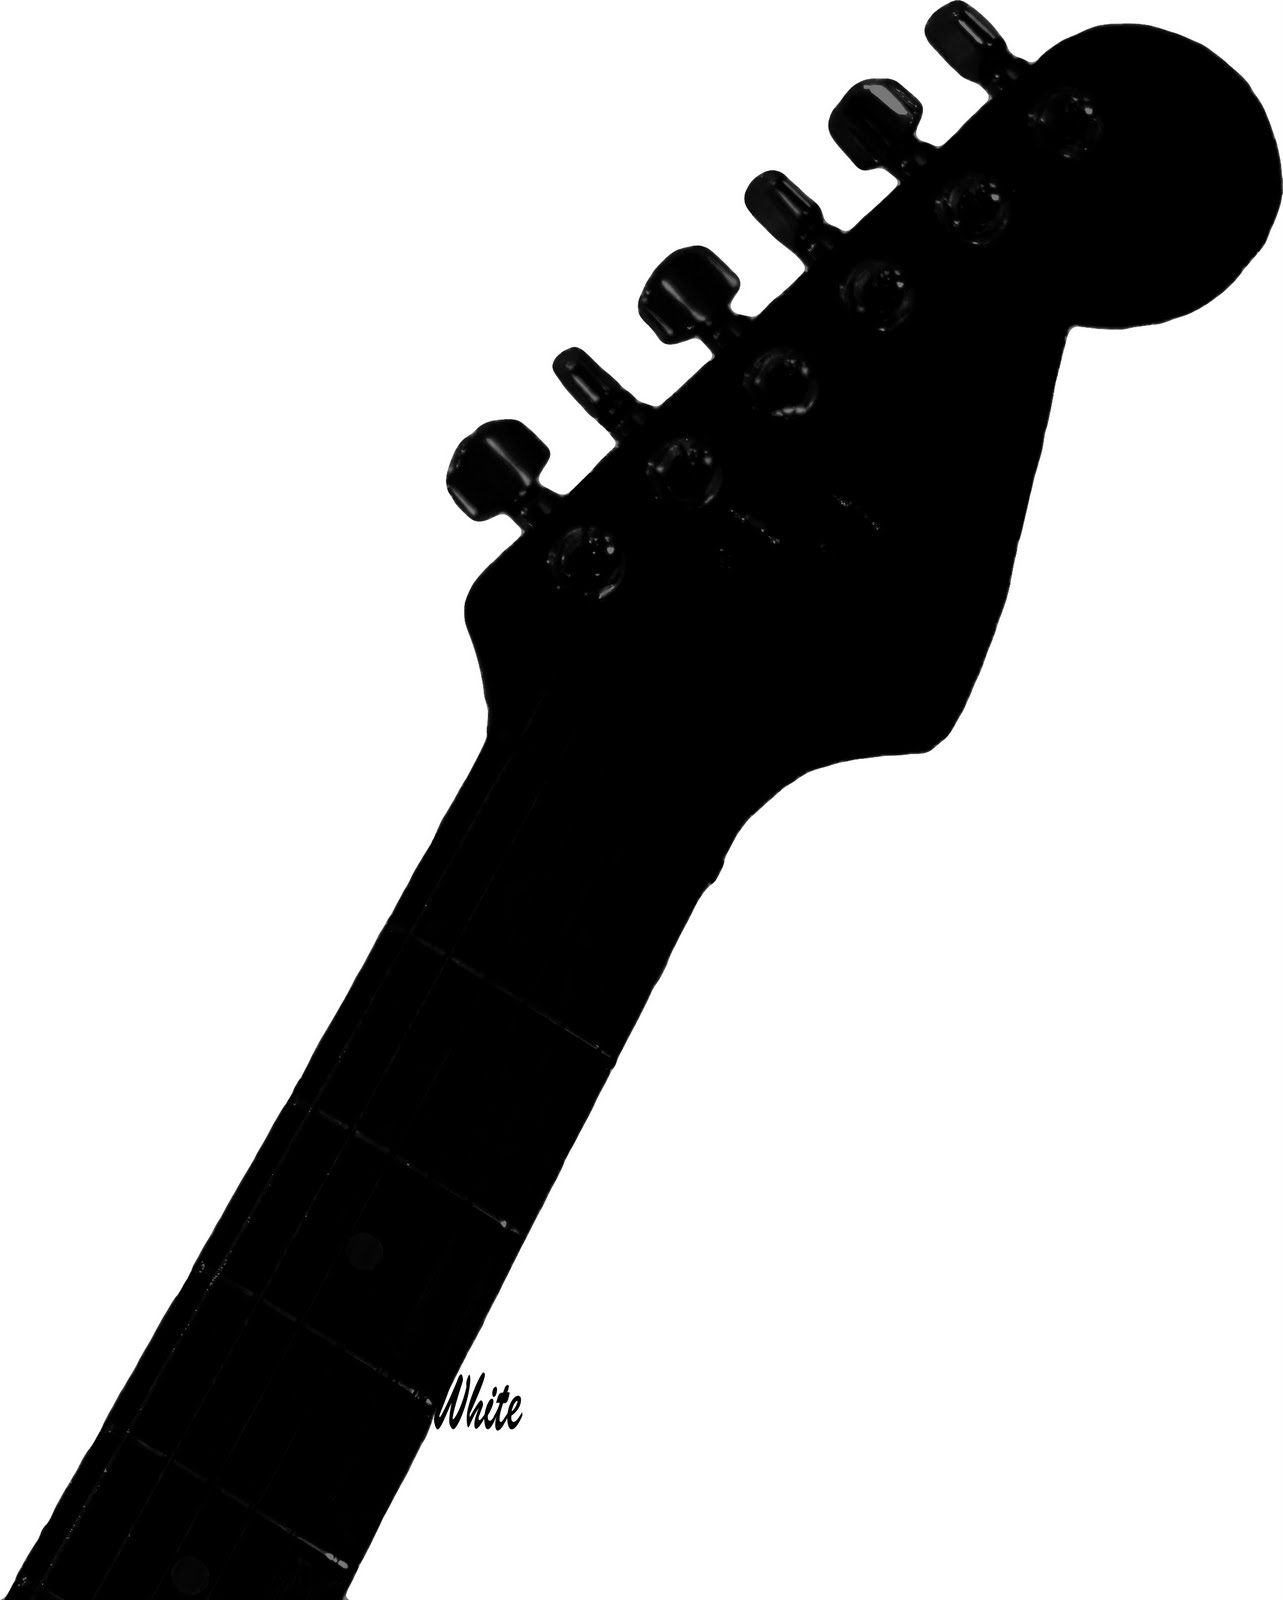 Guitar clipart handle. Acoustic silhouette vector free